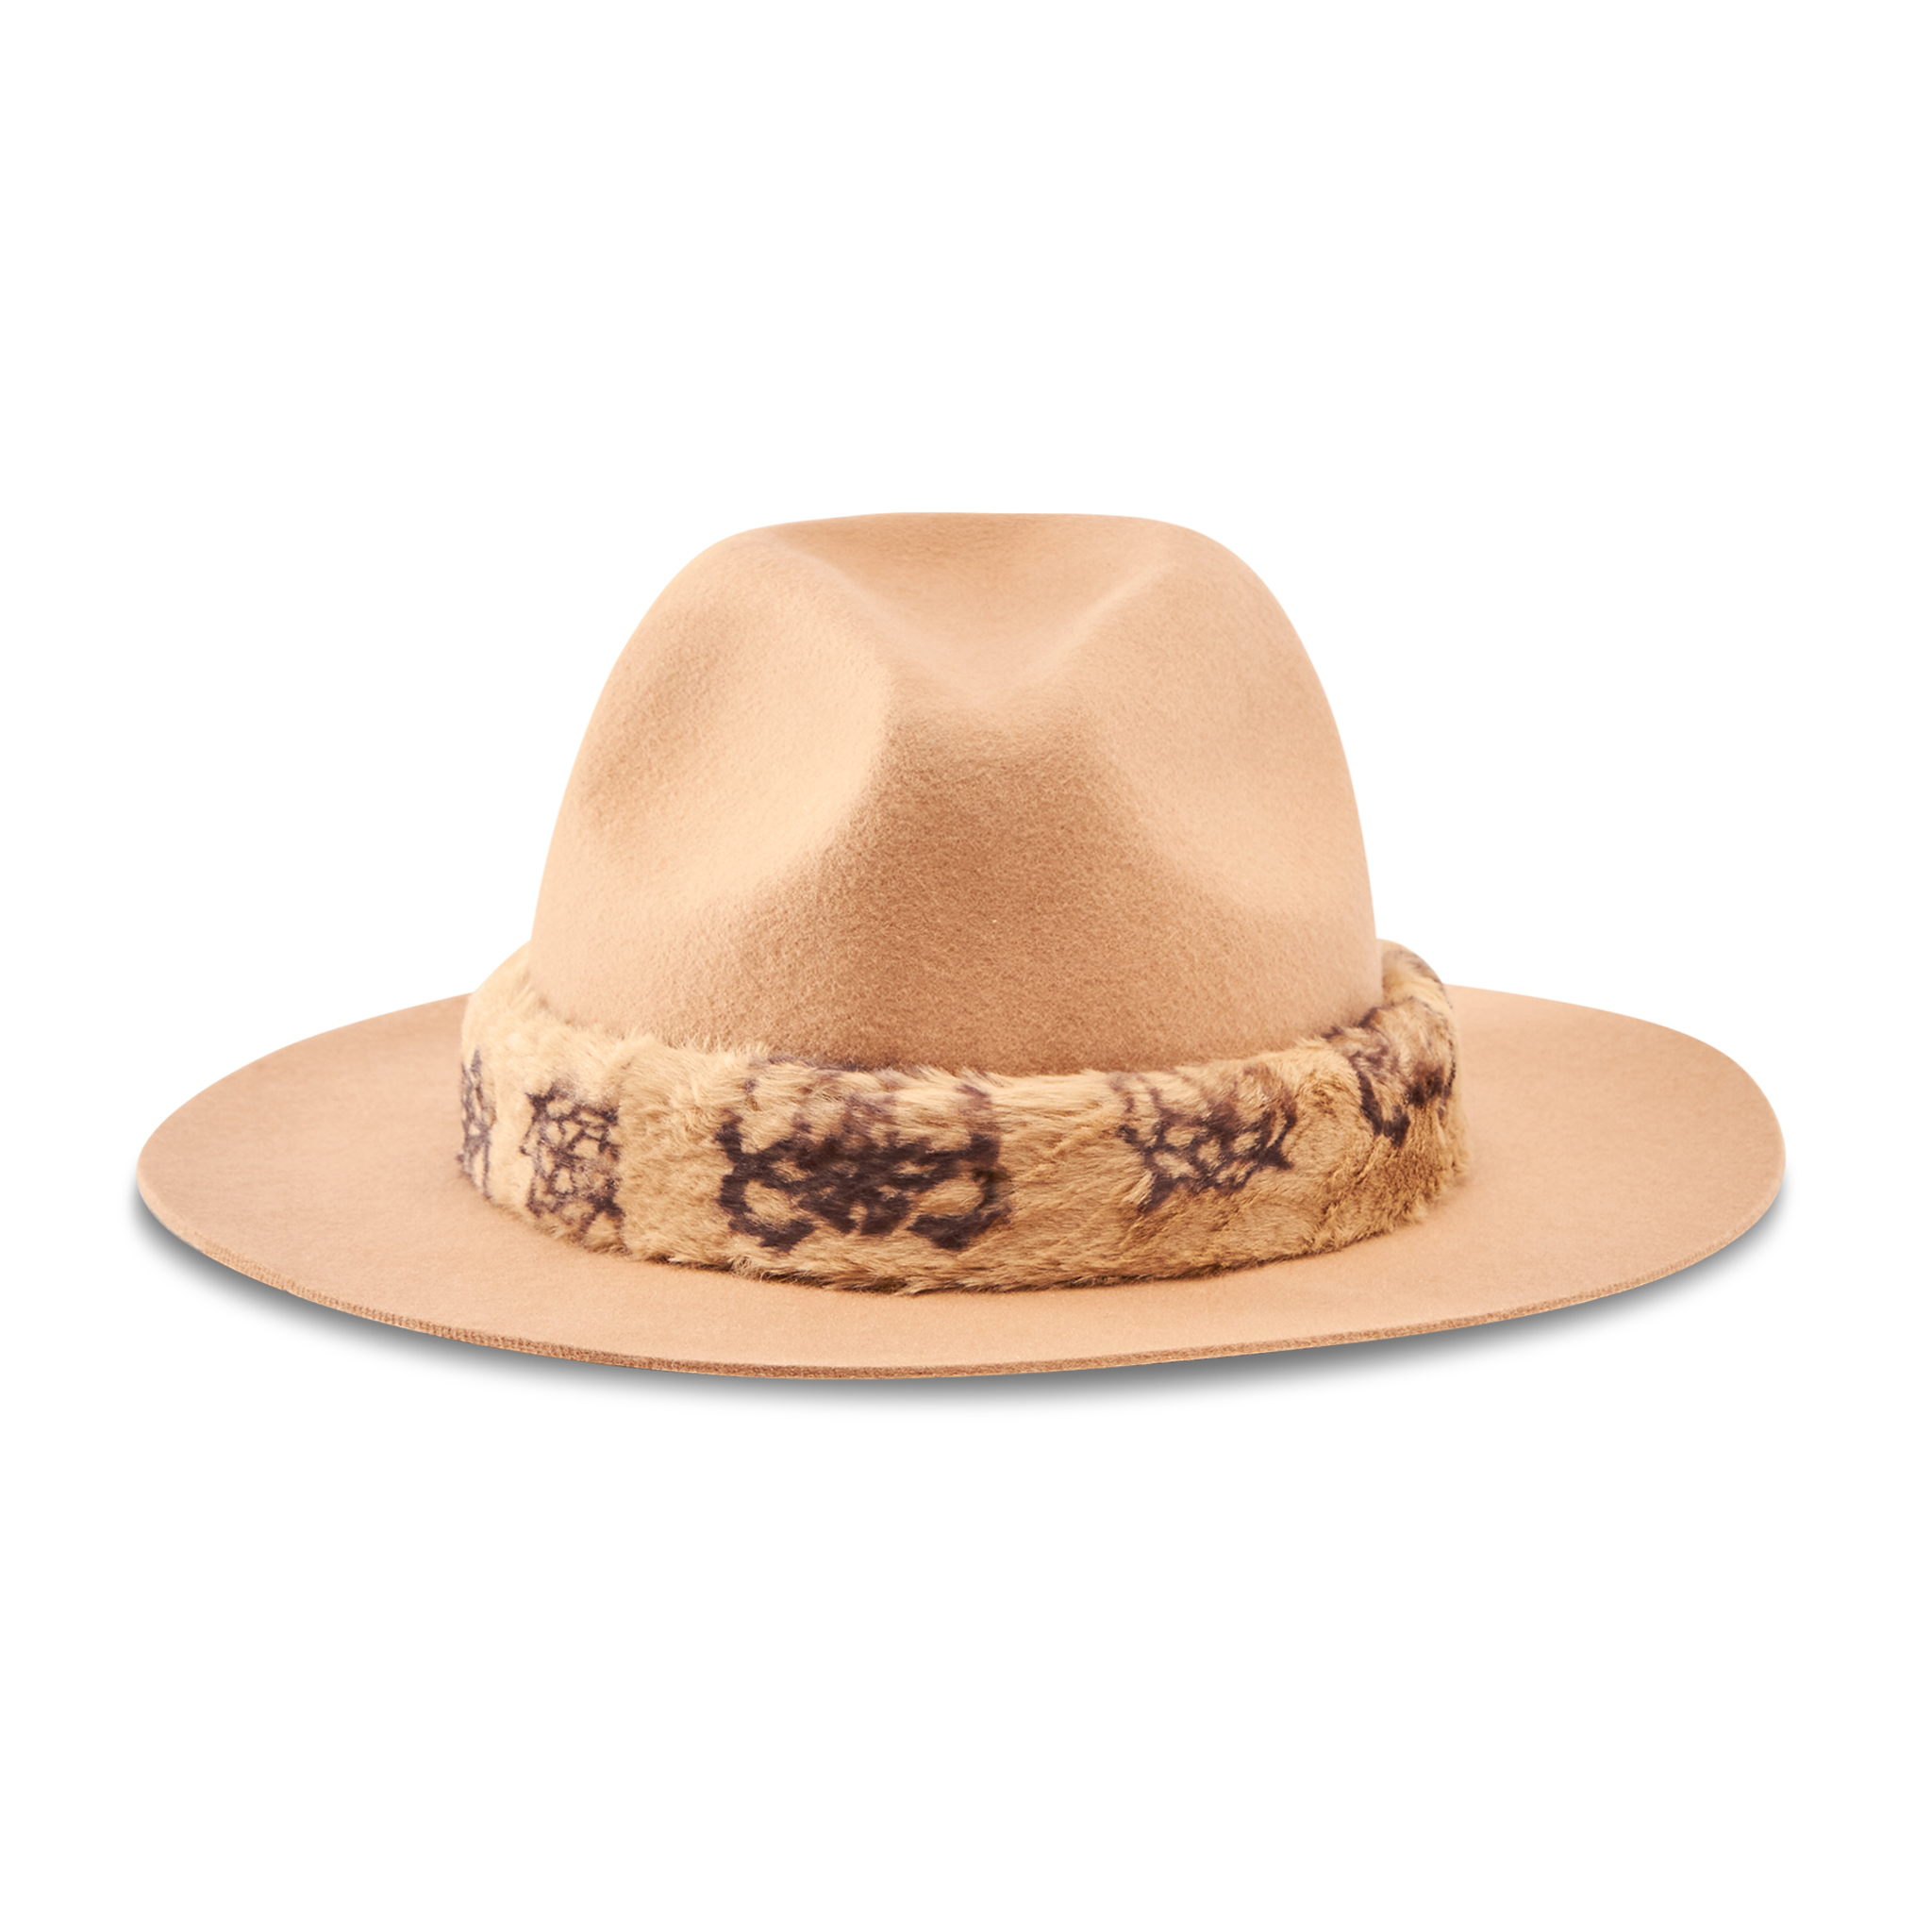 Skrybėlė GUESS - Not Coordinated Hats AW8539 WOL01 CAM